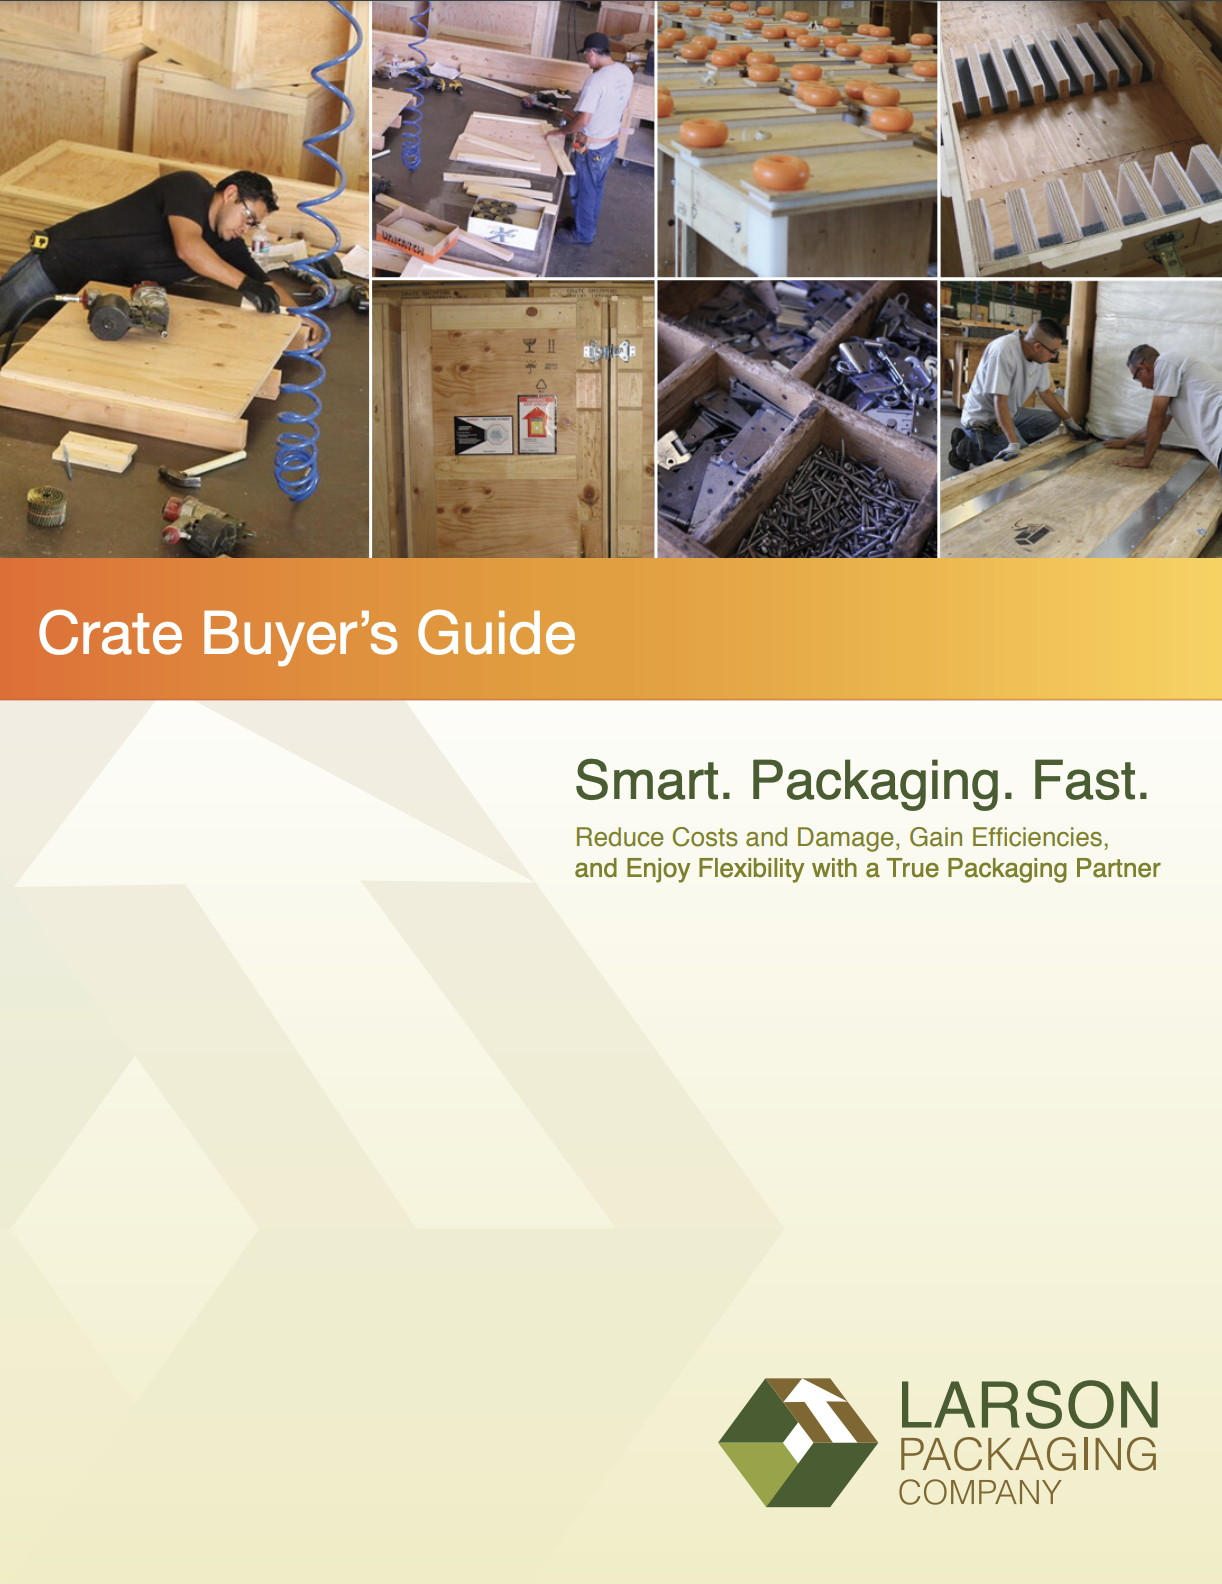 new-crate-buyers-guide-cover